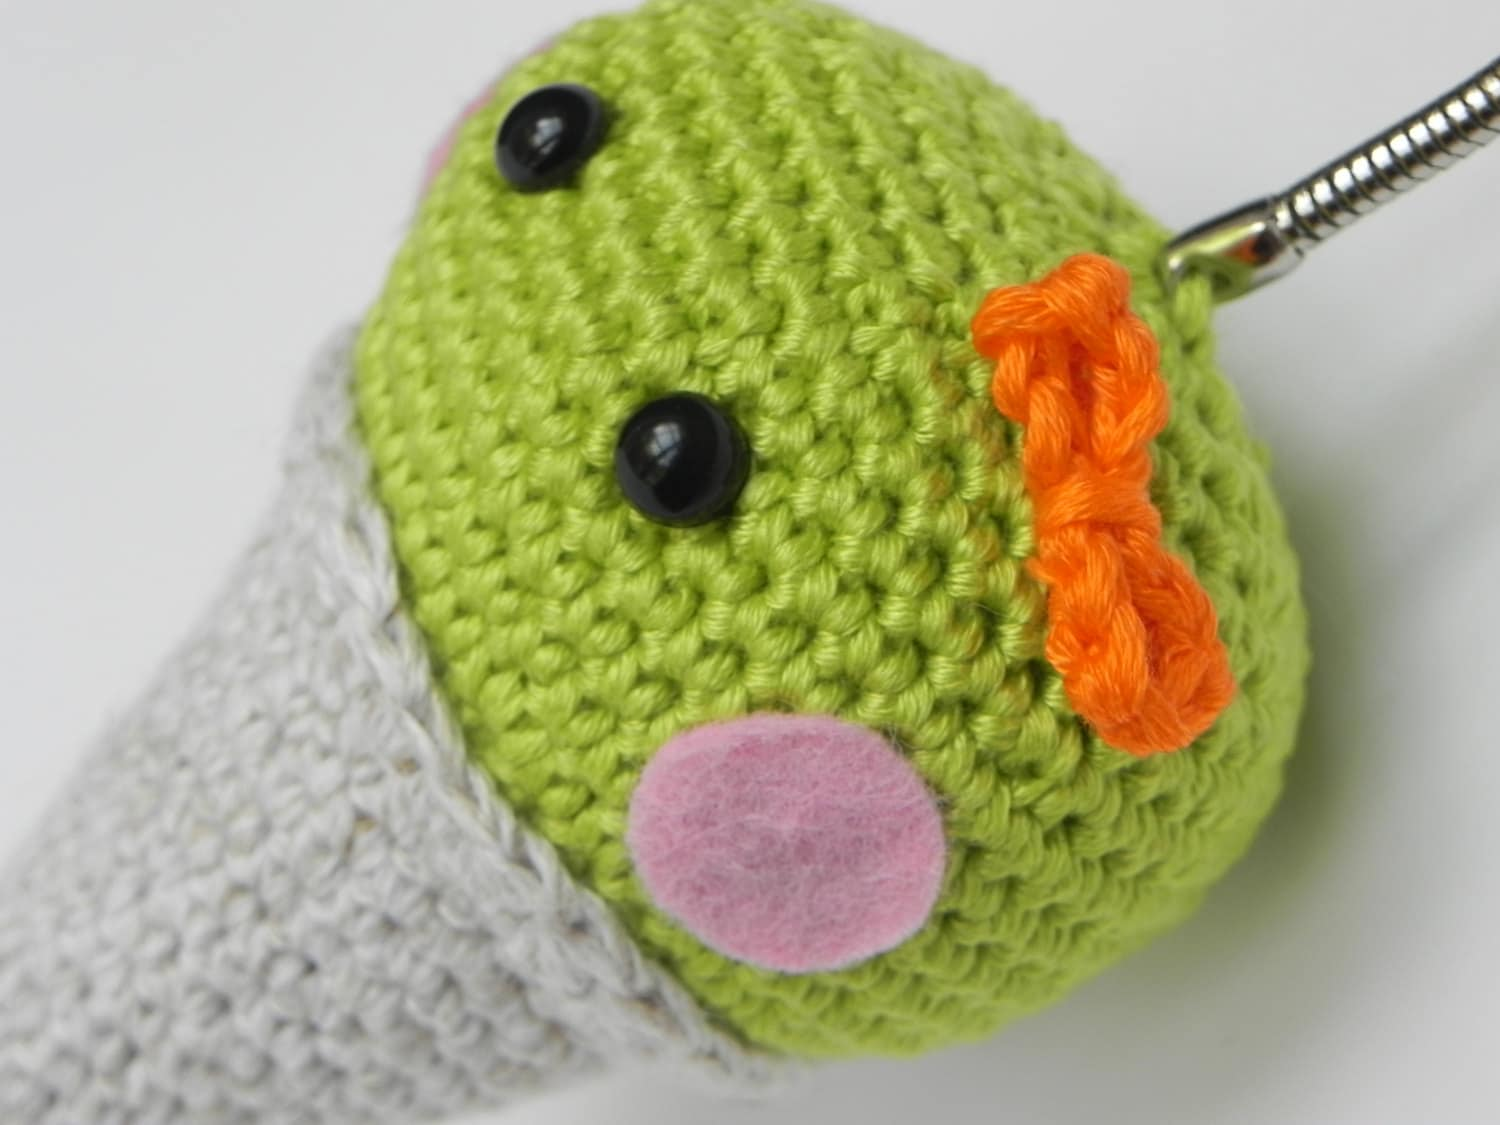 Amigurumi Magische Ring : Items similar to amigurumi crochet key ring (mini-M ...